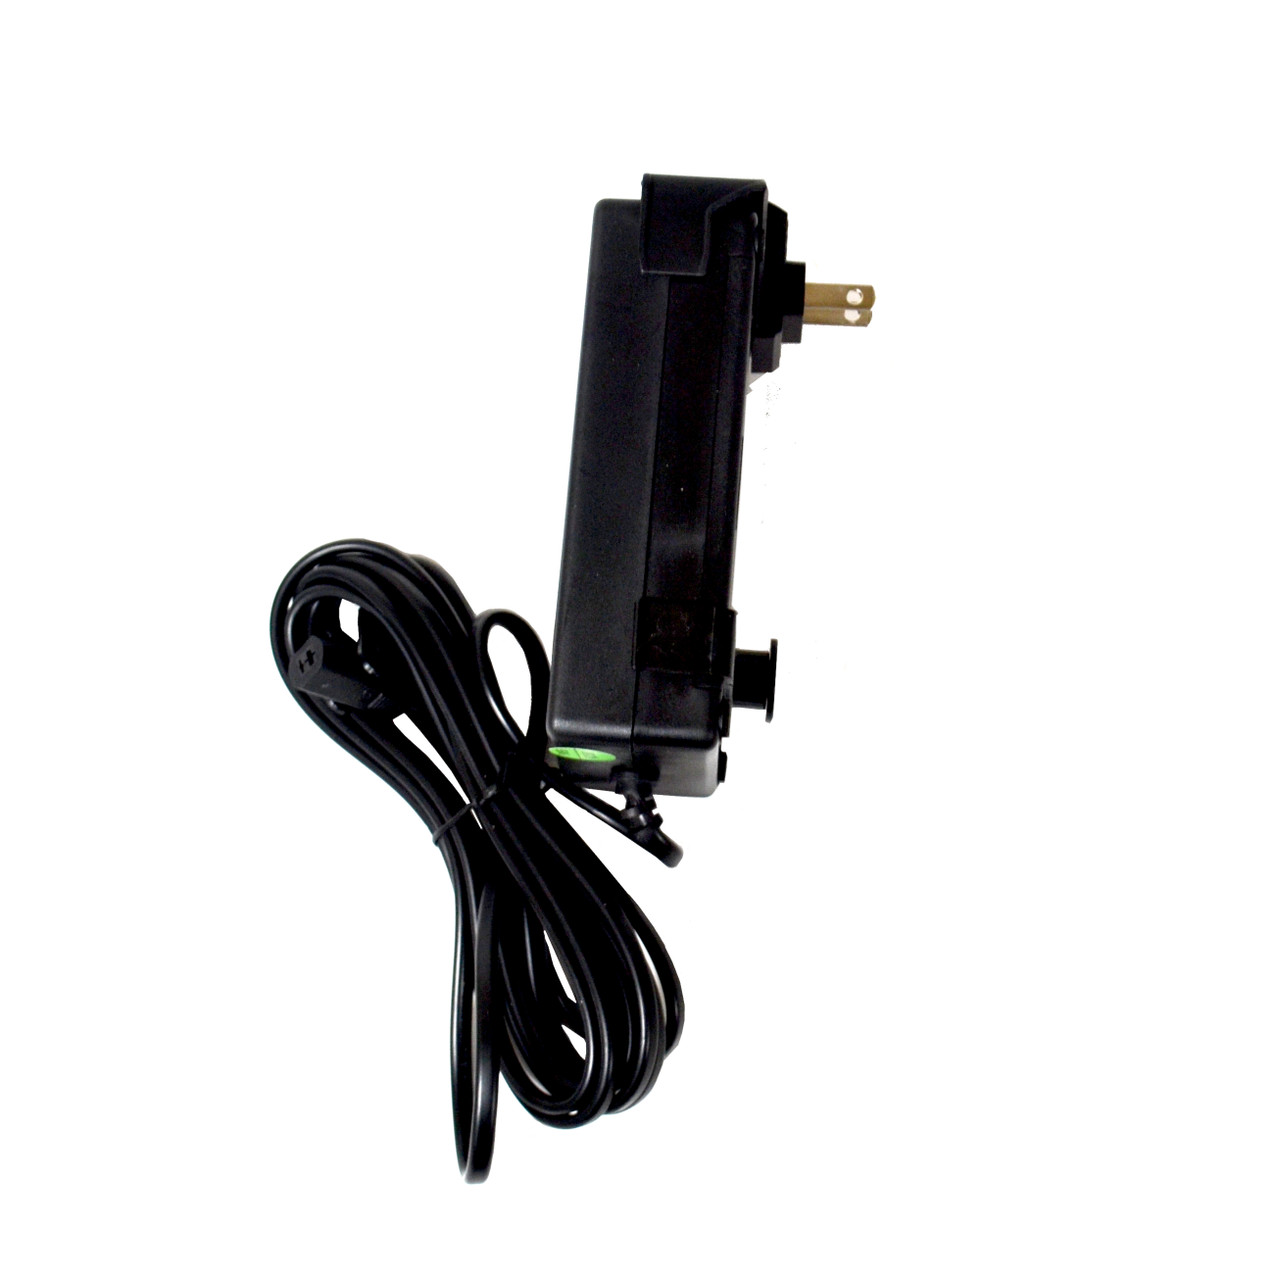 KD, Kaidi,  KDDY001B,  Buy Power Supply For power Recliner, Power Supply For Power Recliner Motor, Transformer for Lift Chair, Power Supply for Recliner, Furniture Accessory Power Supply, Power Cup Holder Power Supply, Power Recliner Handset Power, Limoss Power Supply for Lift Chairs, Power Supply for heat massage lift chairs, Okin Power Supply for Power Recliners, Okin Transformer, Transformer For Berkline, AC DC Switching Power Supply for Power Recliner, Tranquil Ease, Power supply for Berkline and BenchCraft, Battery Back up, Control Box, motor control box, recliner control box, junction box, motor junction box, What Does Recliner Motor Connect to, Relay Box For Lift Chair, Relay Box For Recliner, Relay Box For Power Sofa, dual motor connection, Relay Connection Box For Power Lift Chair, Connect two motors to one transformer, Okin JLDP Power Supply Control Box, Control Box For Power Recliner Motor, Power Supply Control Box